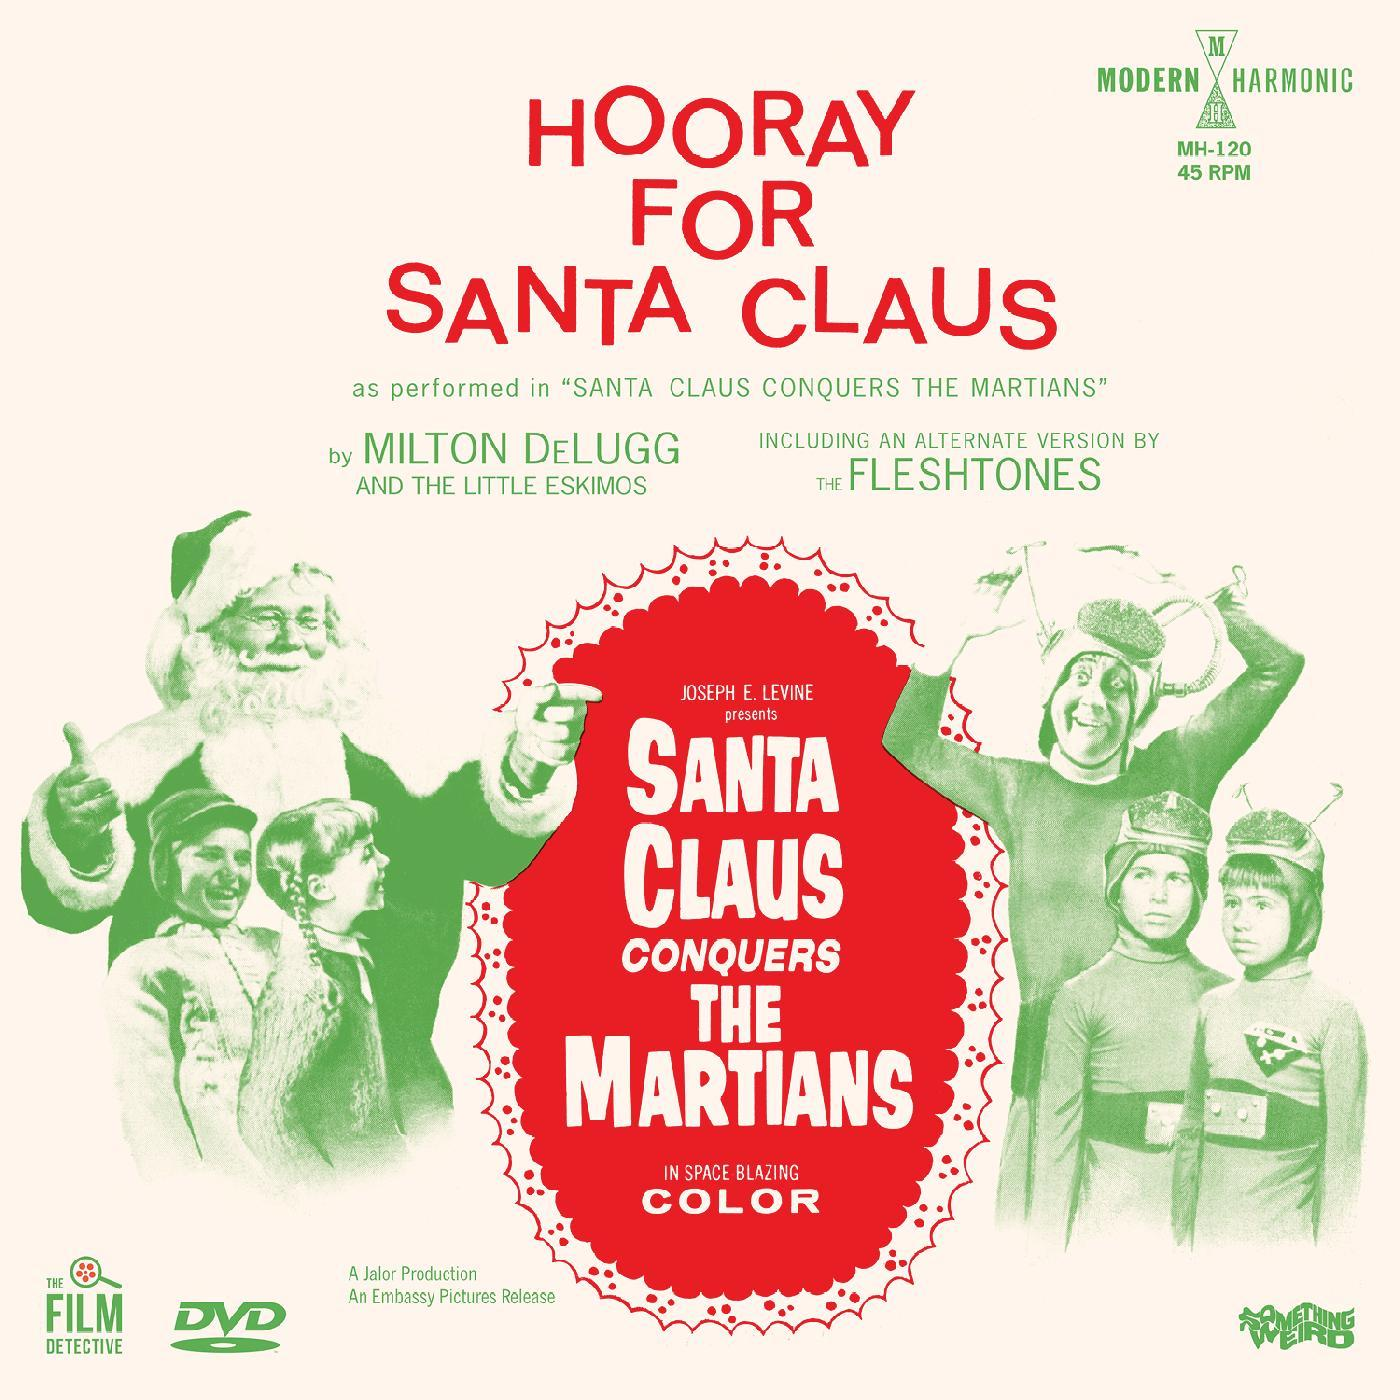 DeLugg, Milton & The Little Eskimos / The Fleshtones - Santa Claus Conquers The Martians - Hooray For Santa Claus [RSD BF 2020]